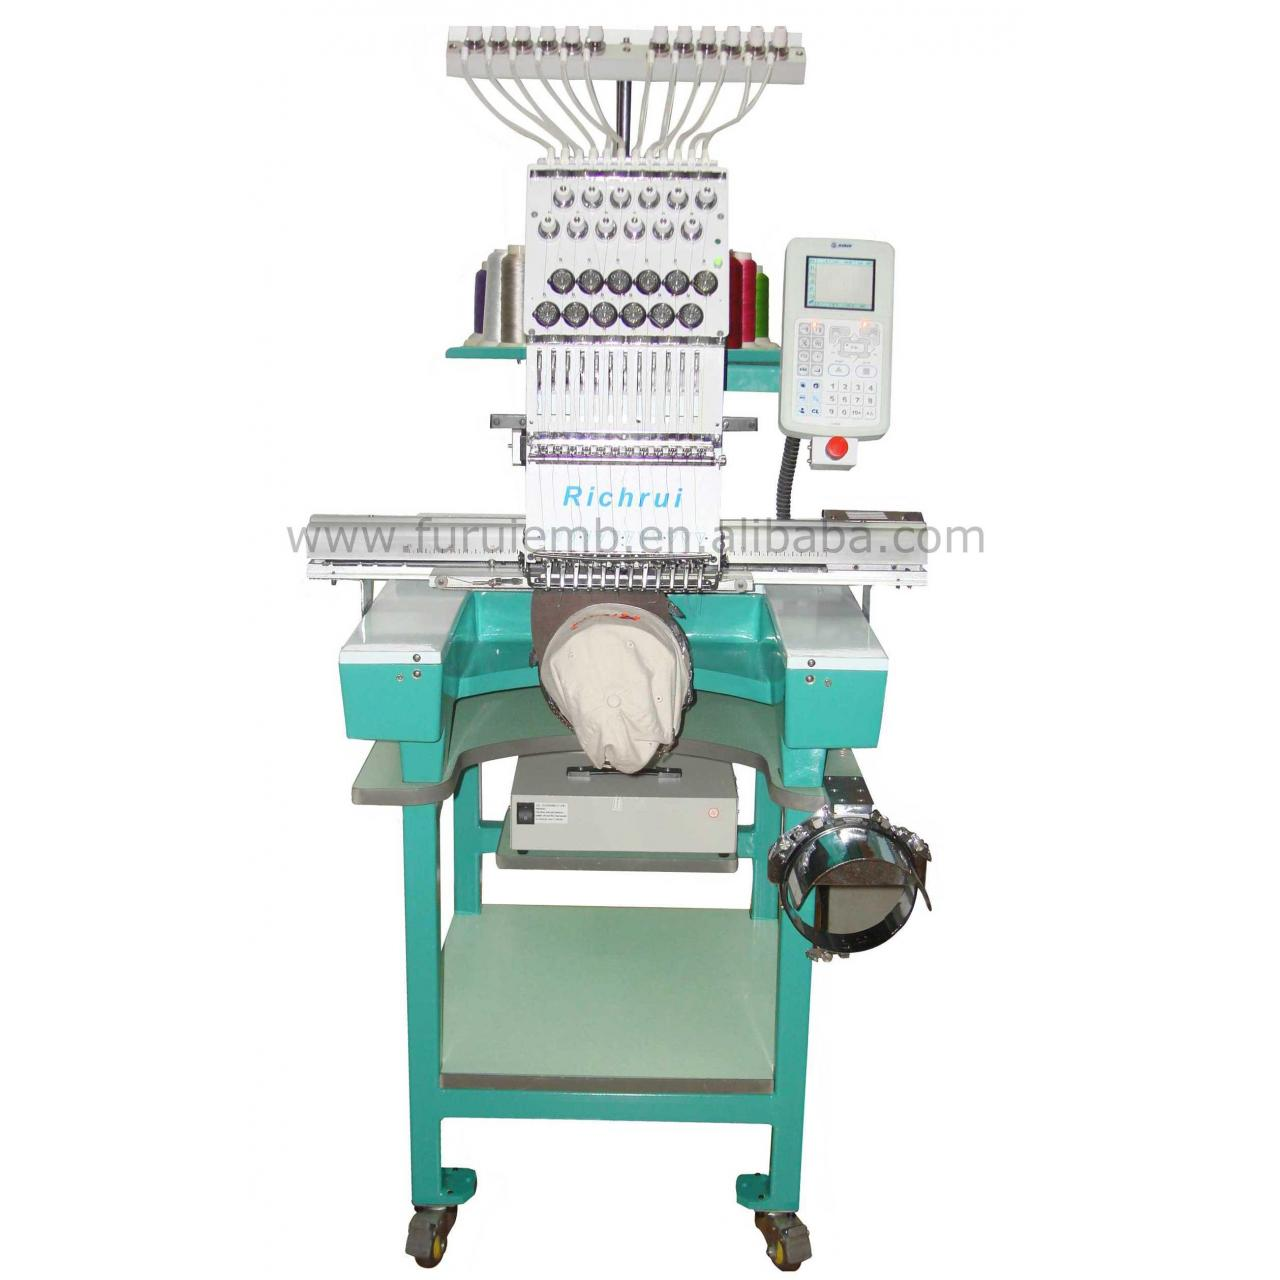 Buy cheap Richrui Single head Cap embroidery machine from wholesalers